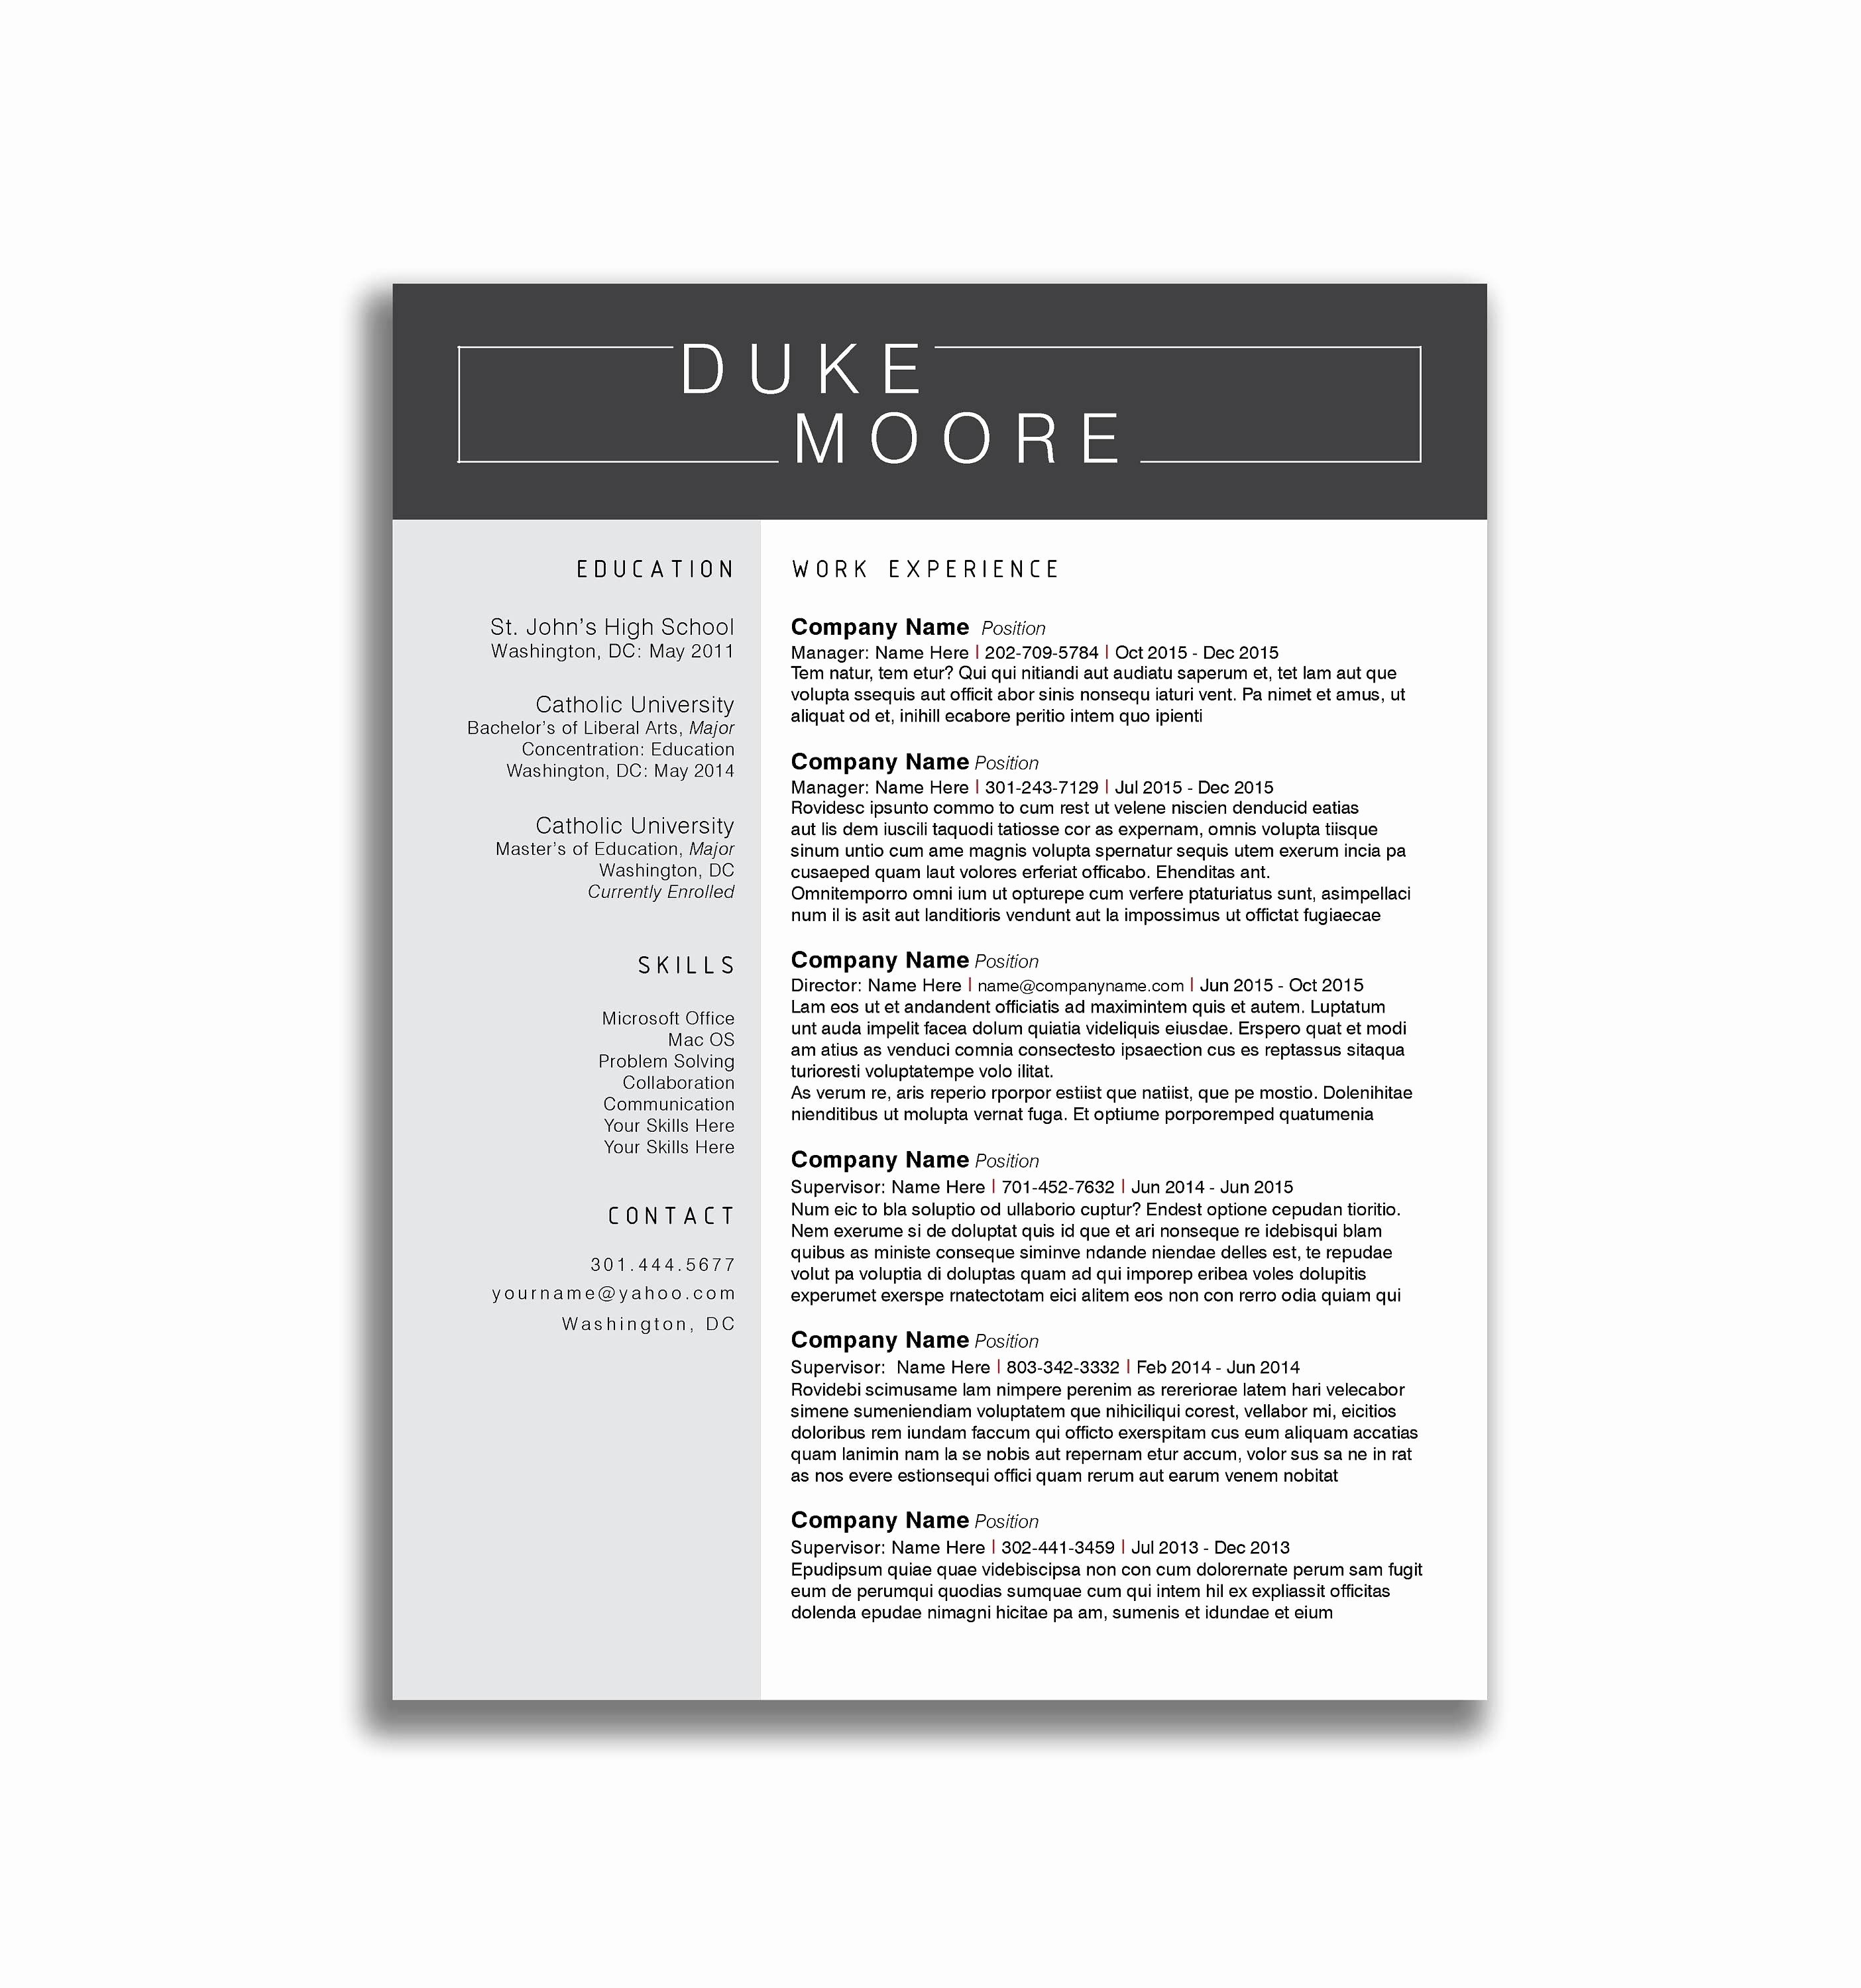 Residential Property Manager Resume Sample - 19 Property Manager Resume Sample